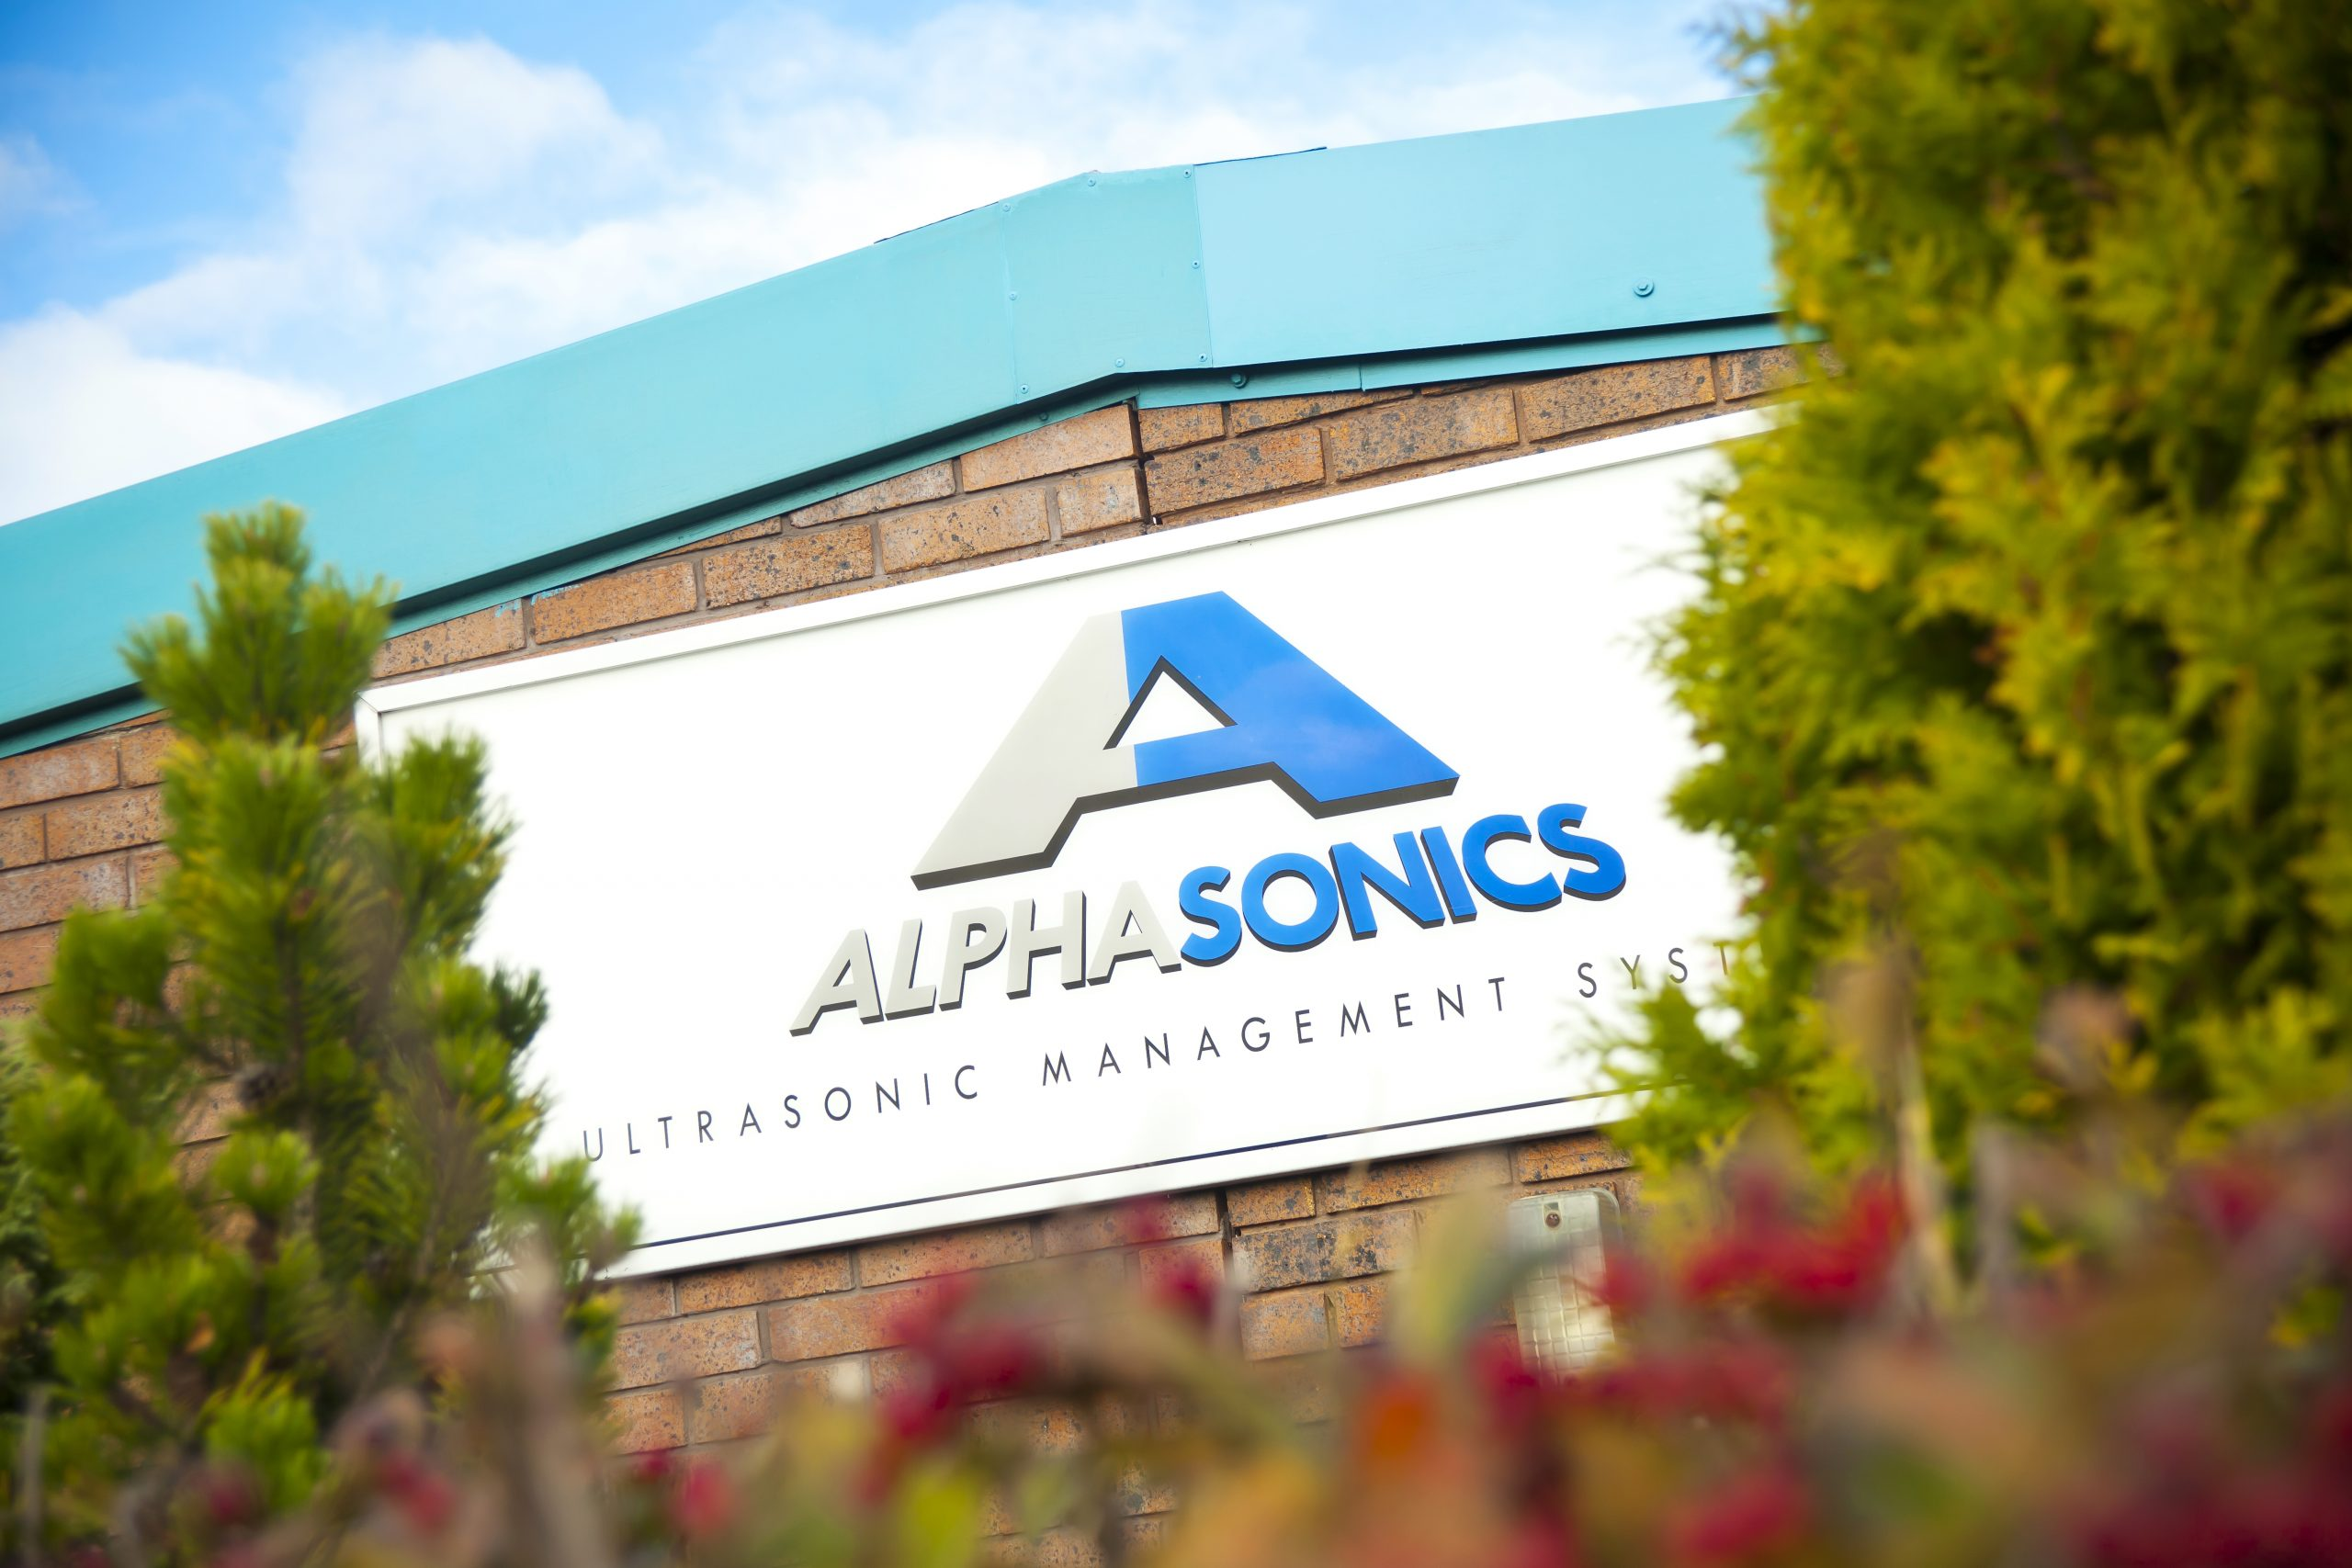 This is an image of the front of the Alphasonics building.